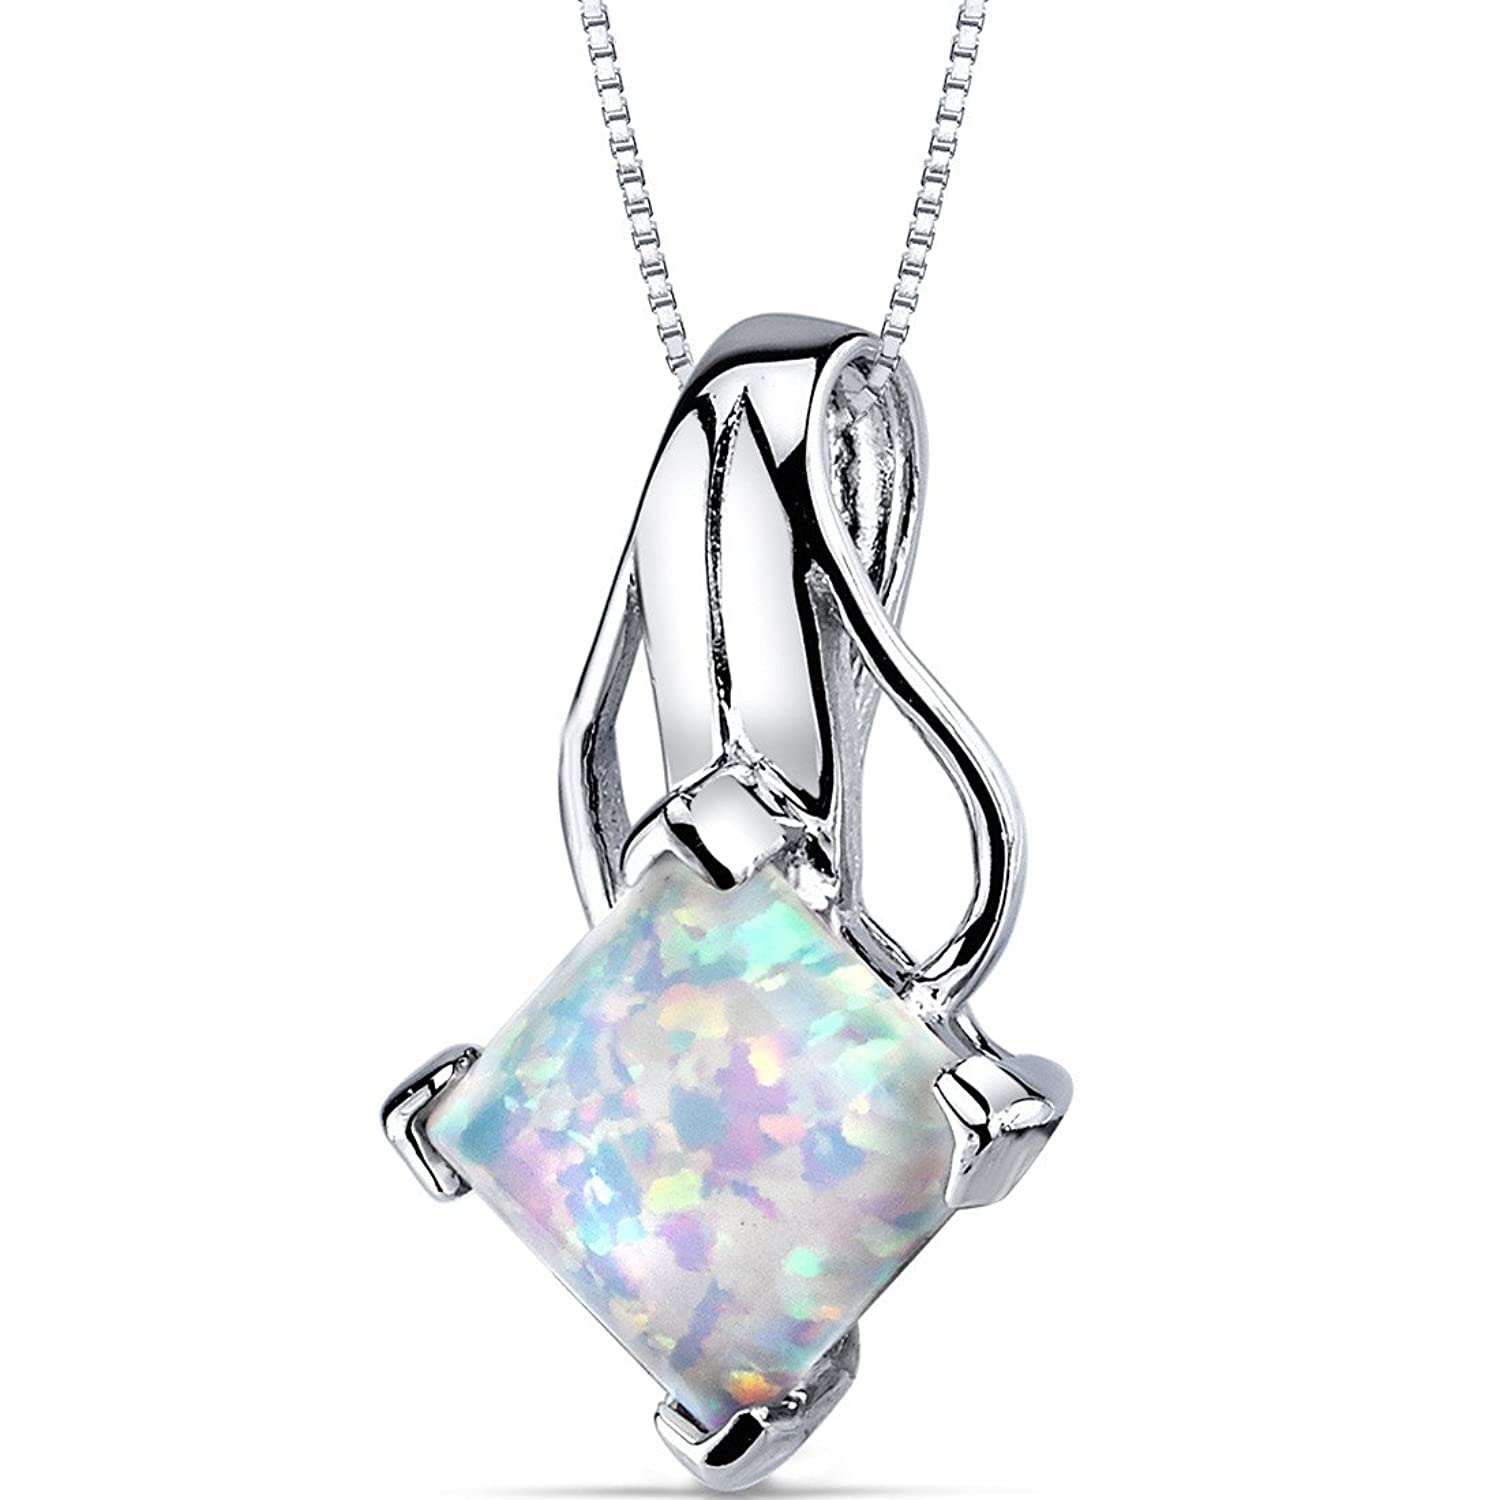 catherine lv crystal white opal necklace medallion pendant popesco